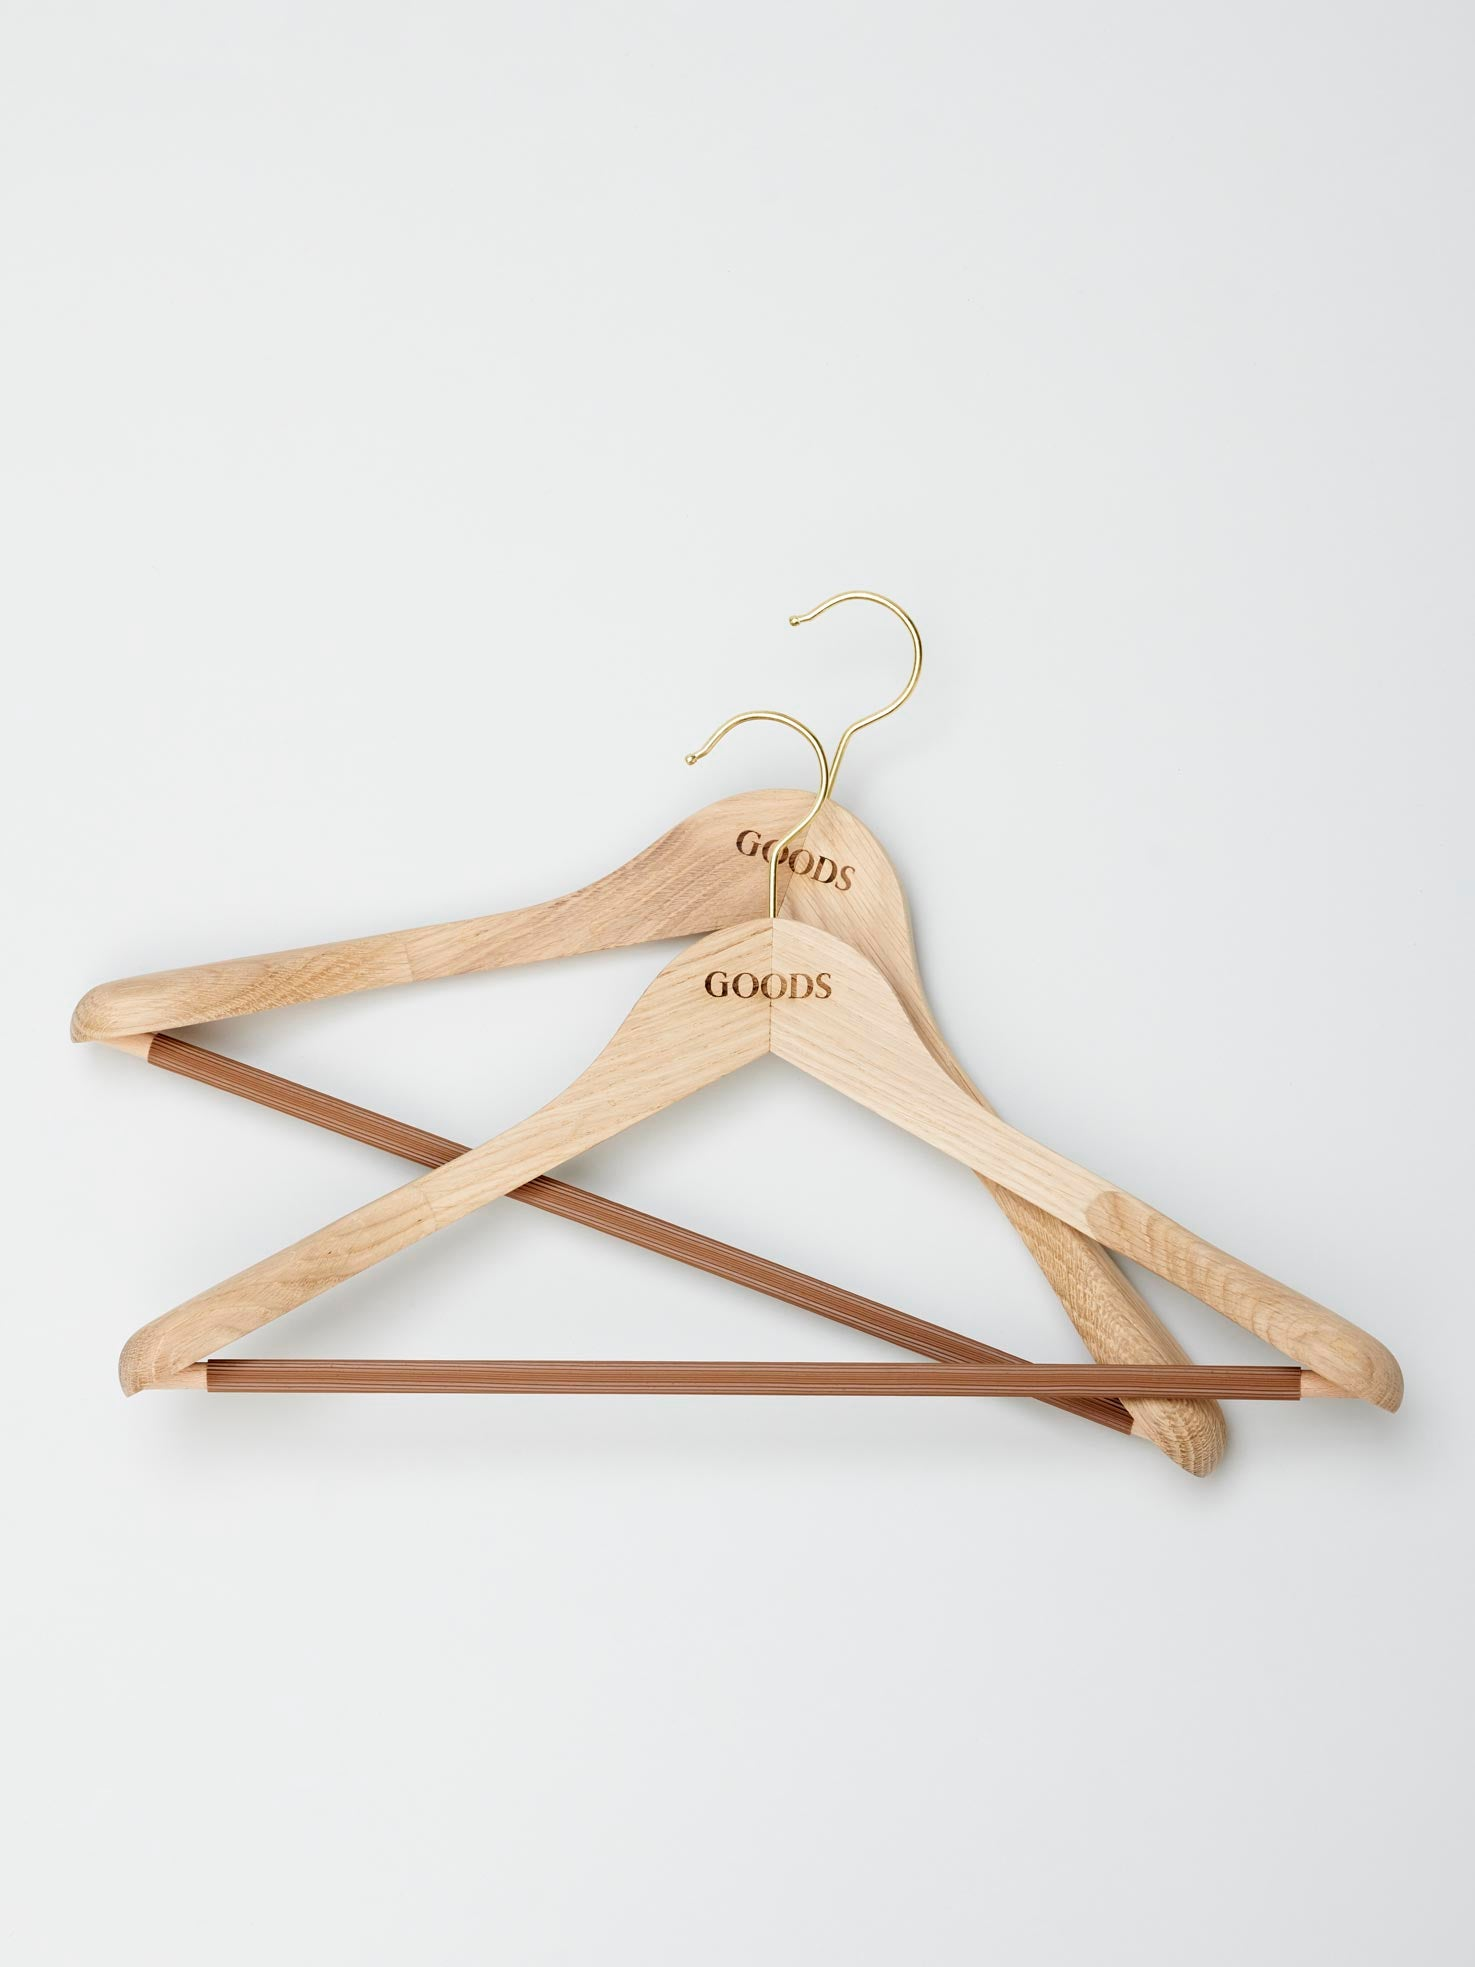 2 x Solid Oak Hangers for Suits & Jackets